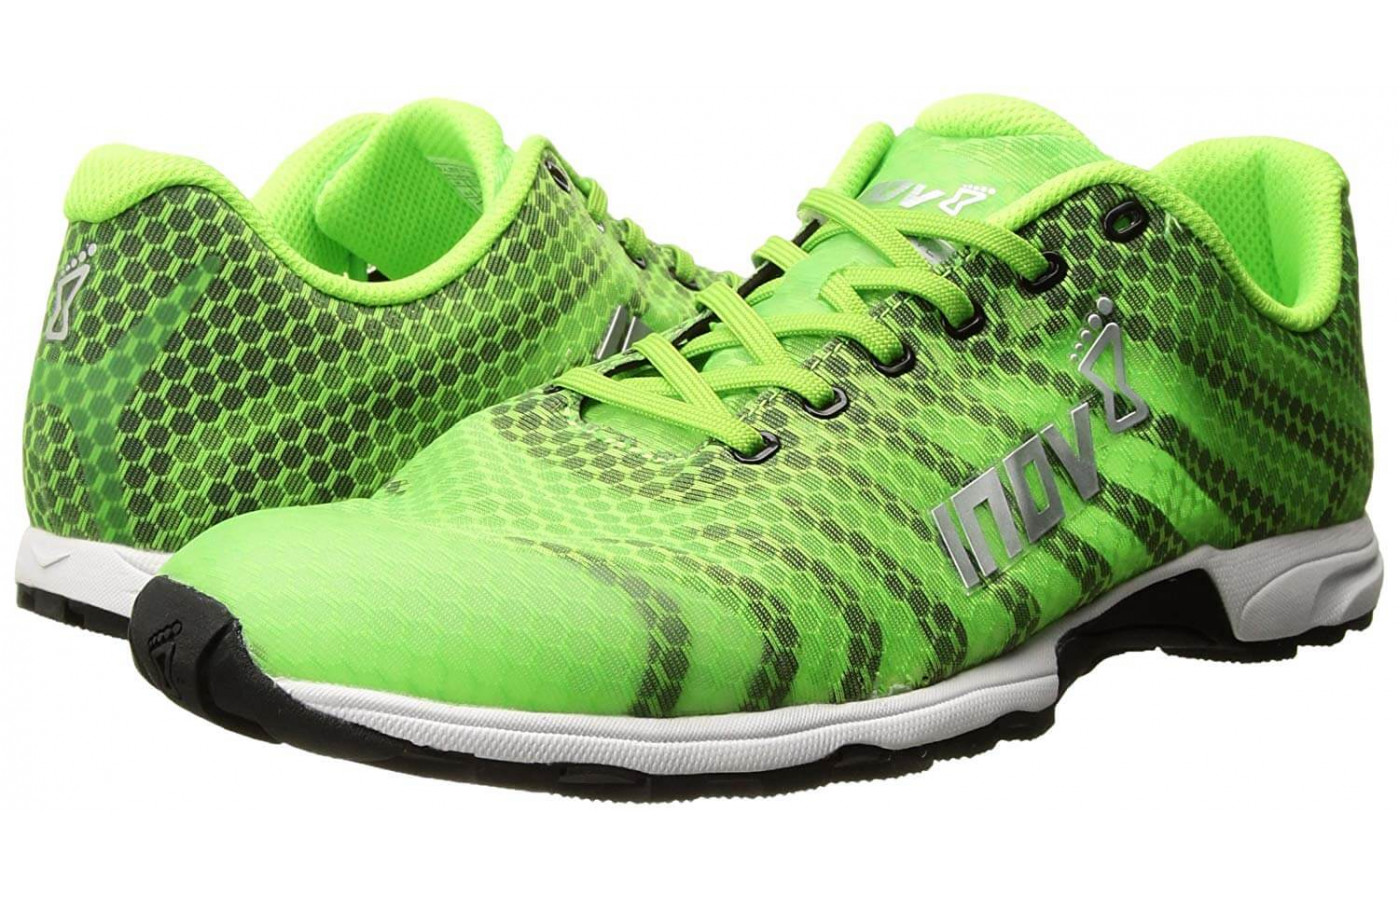 Inov-8 F-Lite 195 V2 left right